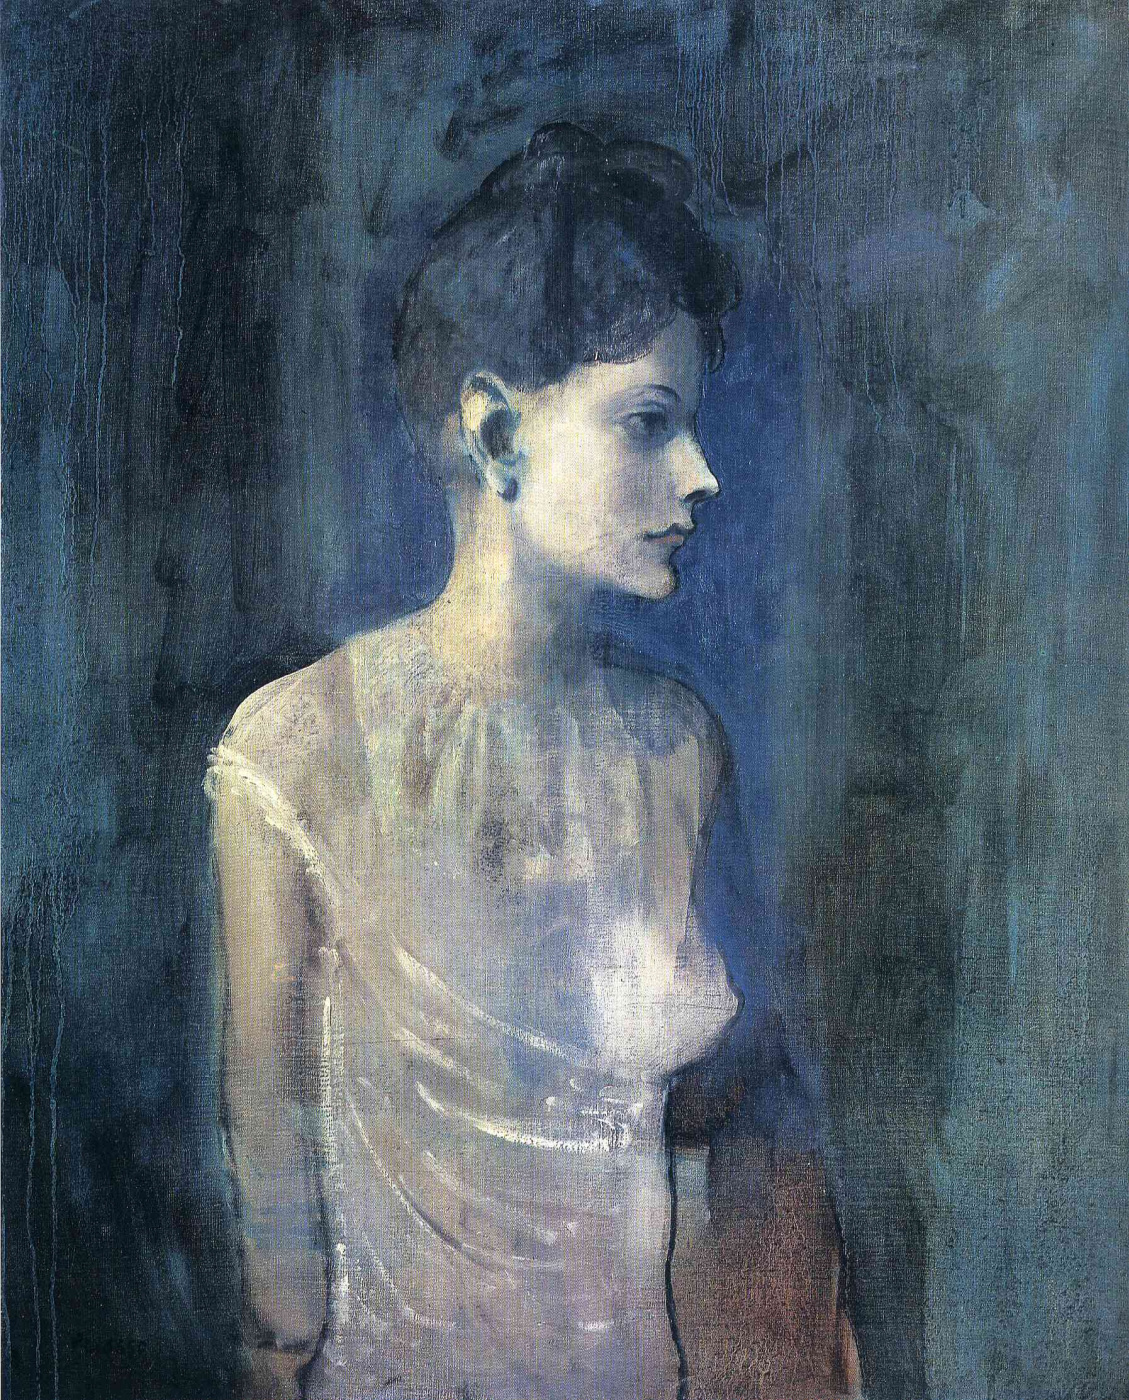 Pablo Picasso. Girl in a chemise